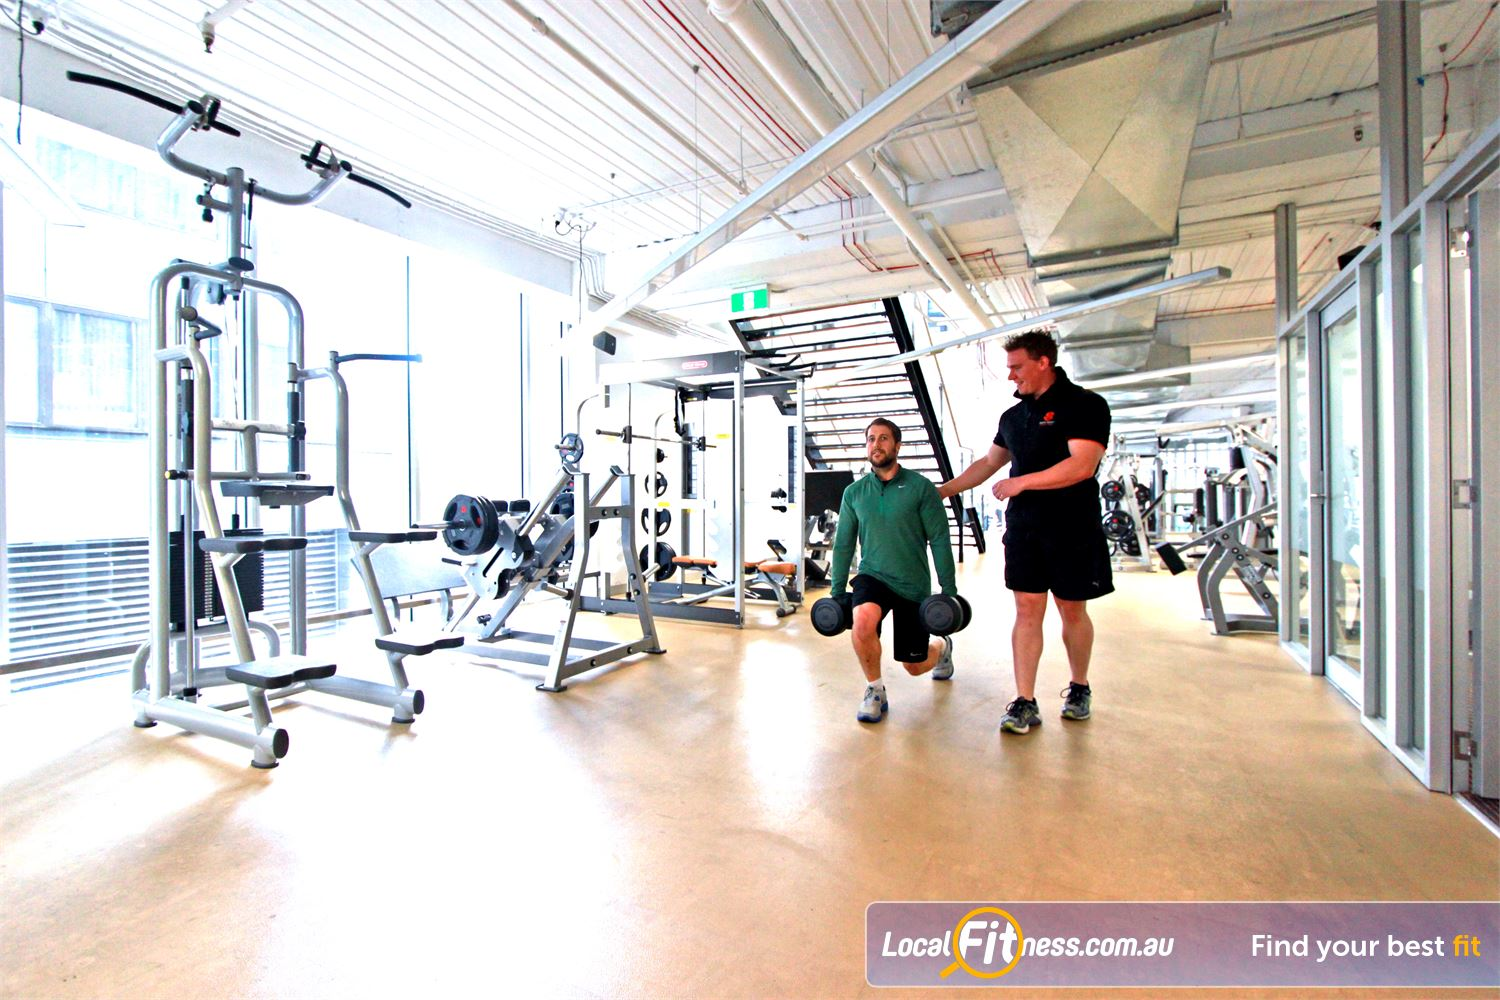 South Pacific Health Clubs Melbourne South Pacific Melbourne gym instructors can monitor your strength training program and results.